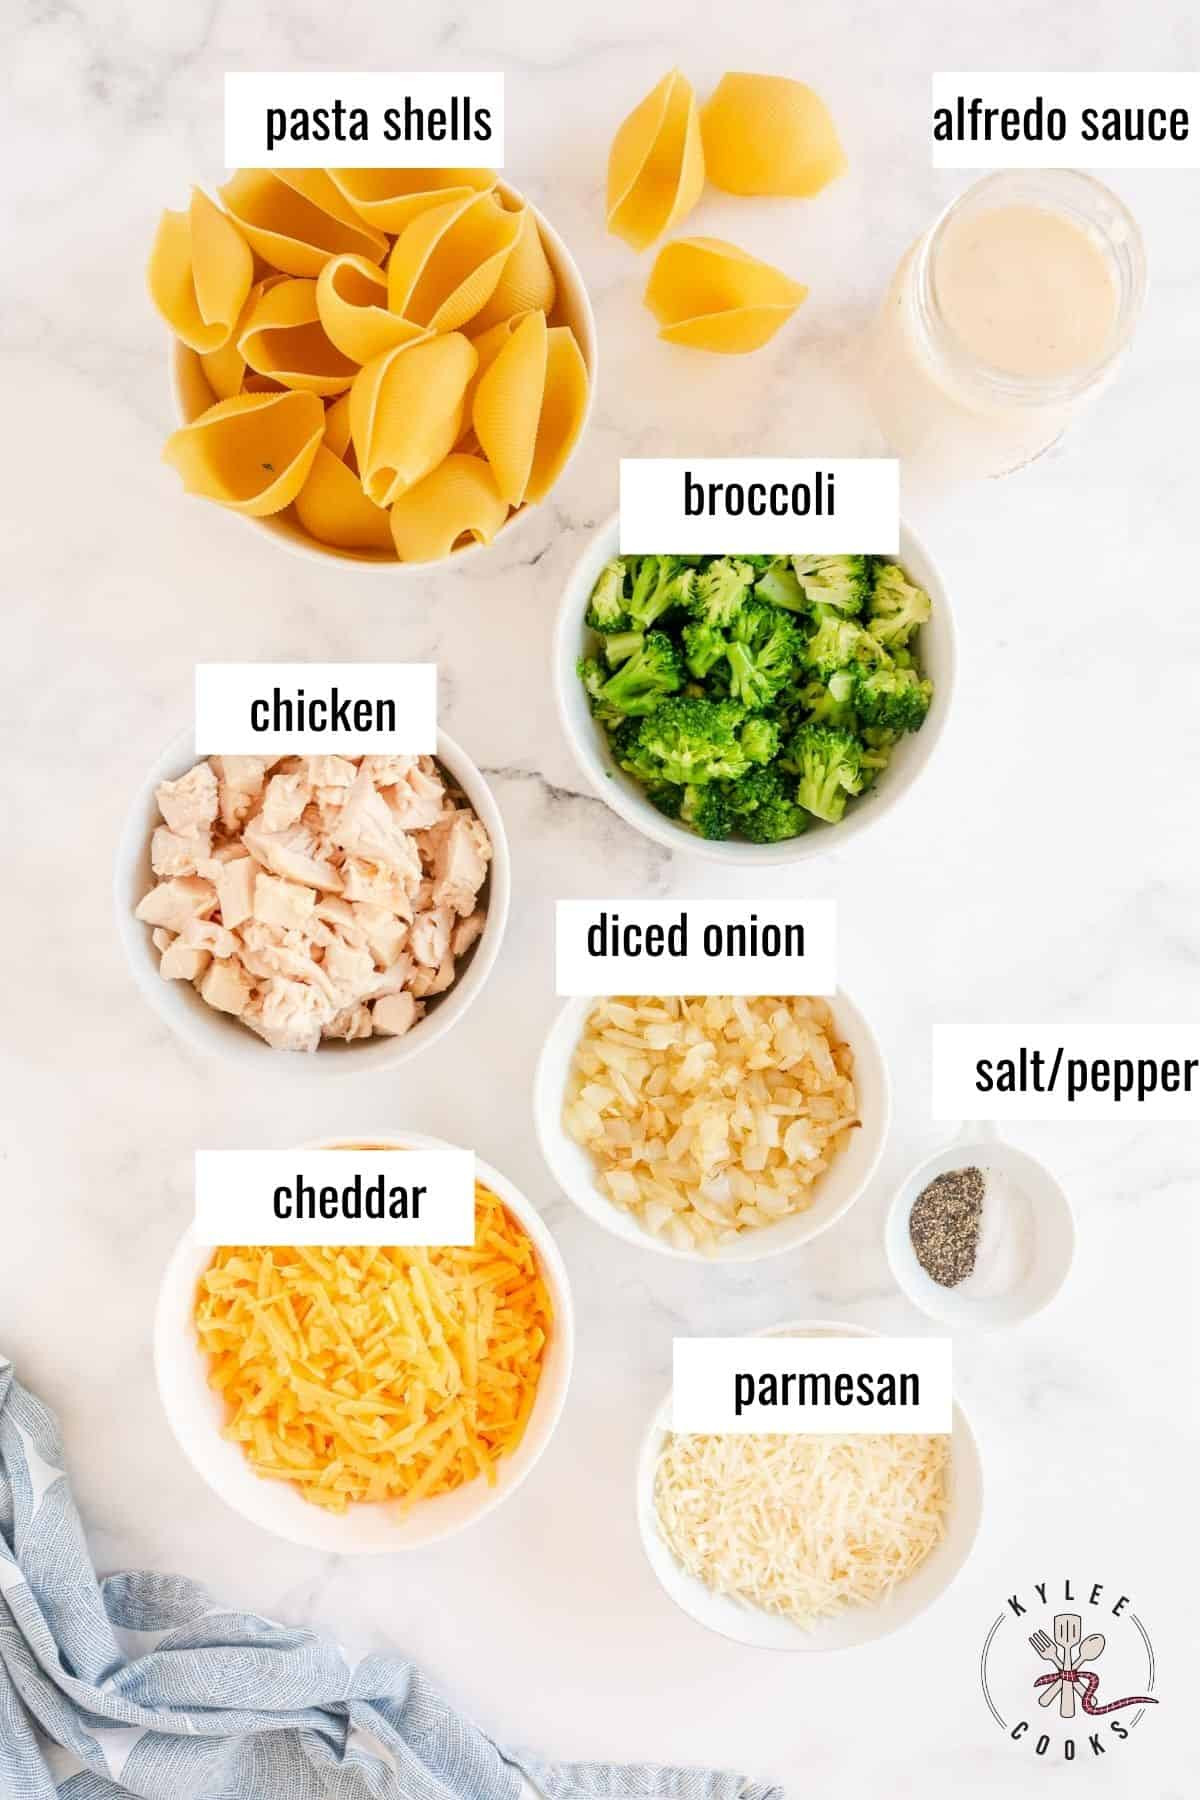 ingredients to make chicken alfredo stuffed shells laid out and labeled